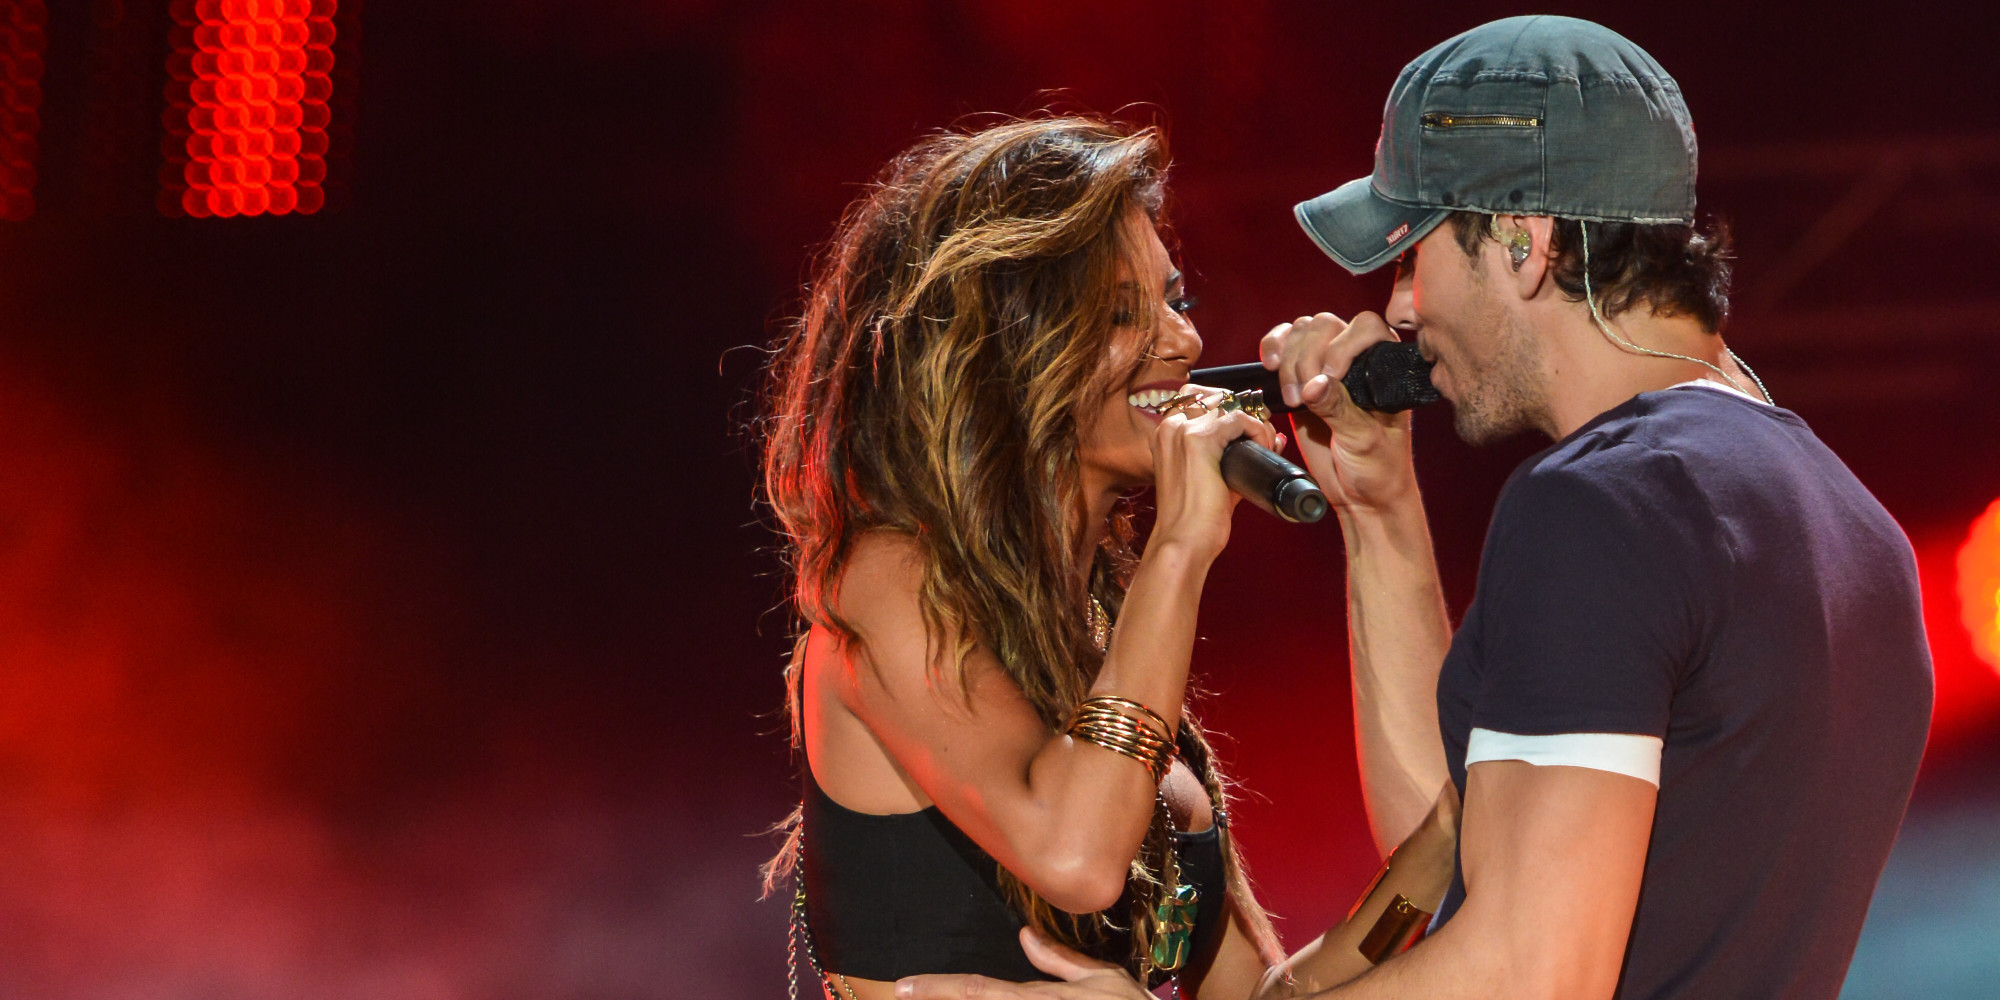 ciara and enrique iglesias dating No, he's dating anna kournikova they've been dating for five years and it's really serious (he has said.